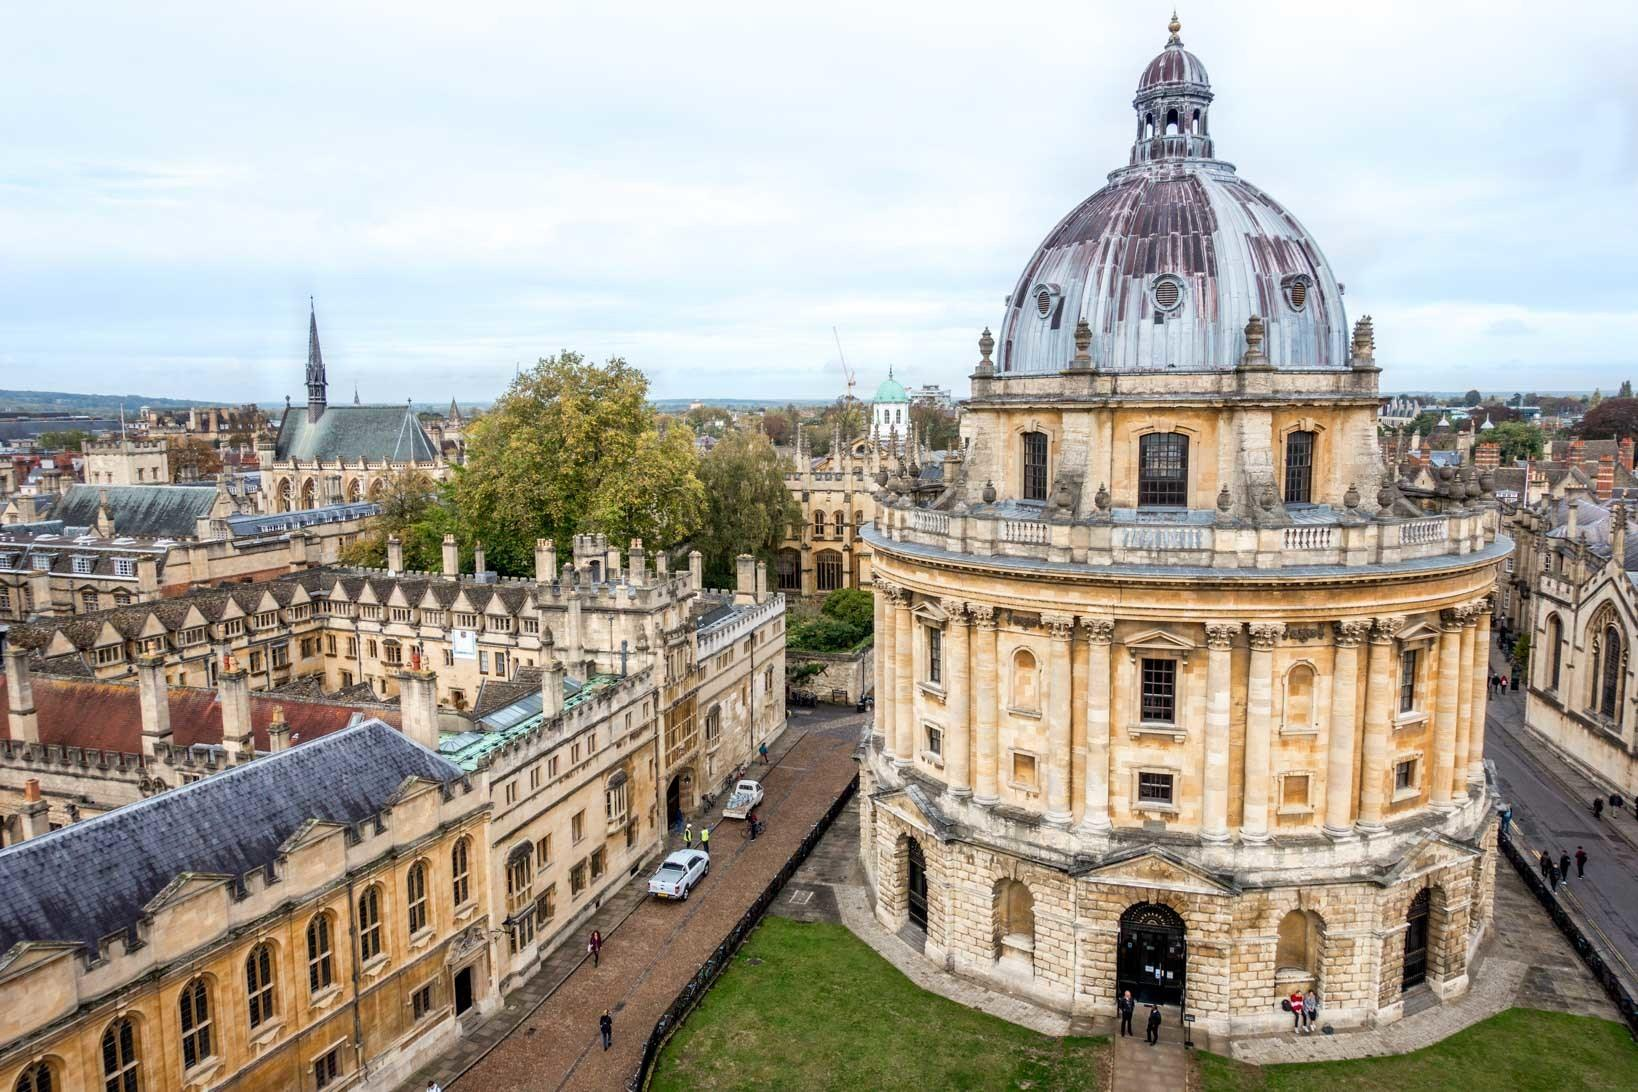 Overhead view of round Radcliffe Camera and other buildings